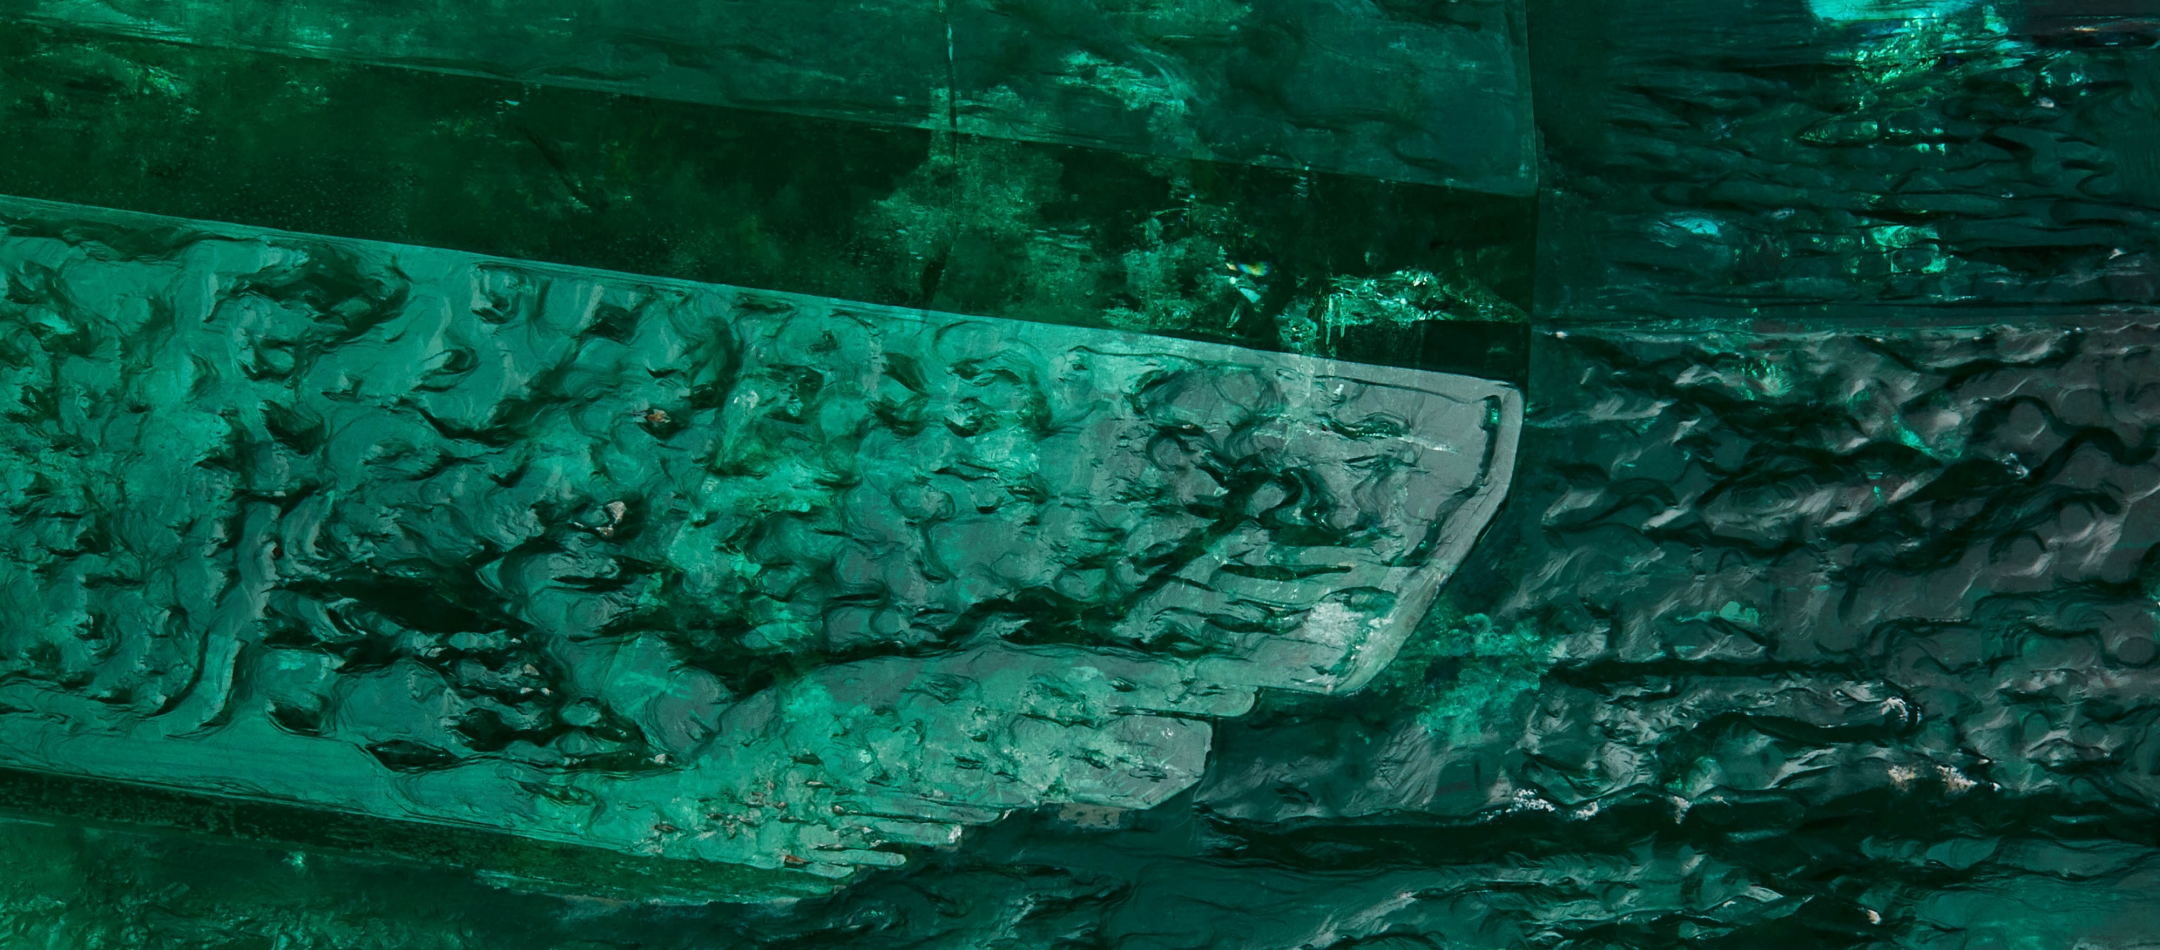 Emerald Detail Highlighting Surface Texture